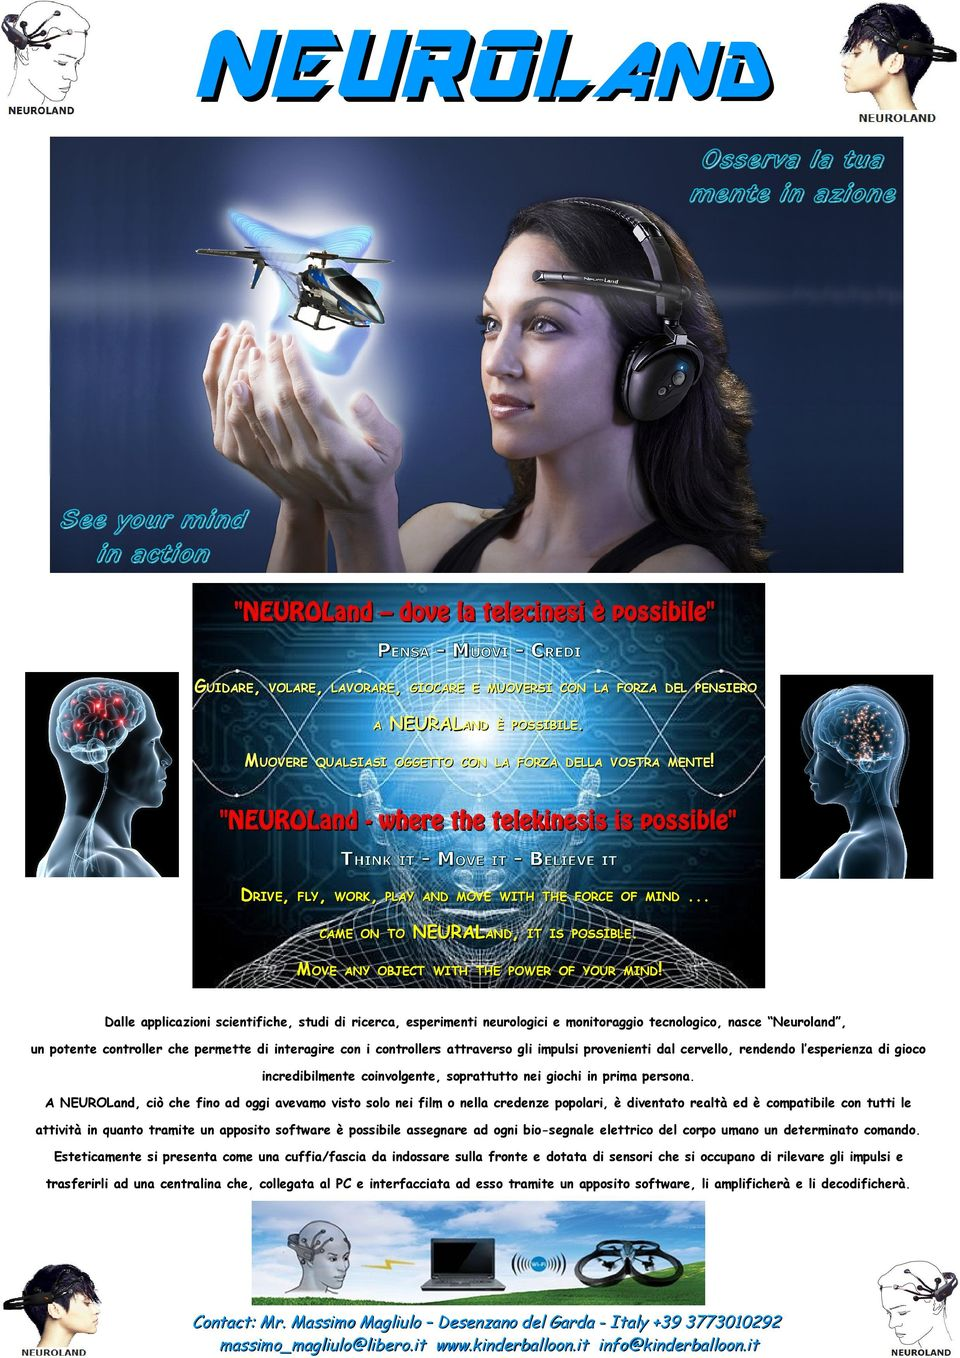 """NEUROLand - where the telekinesis is possible"" THINK DRIVE, IT - MOVE IT - BELIEVE IT FLY, WORK, PLAY AND MOVE WITH THE FORCE OF MIND CAME ON TO MOVE NEURALAND,... IT IS POSSIBLE."